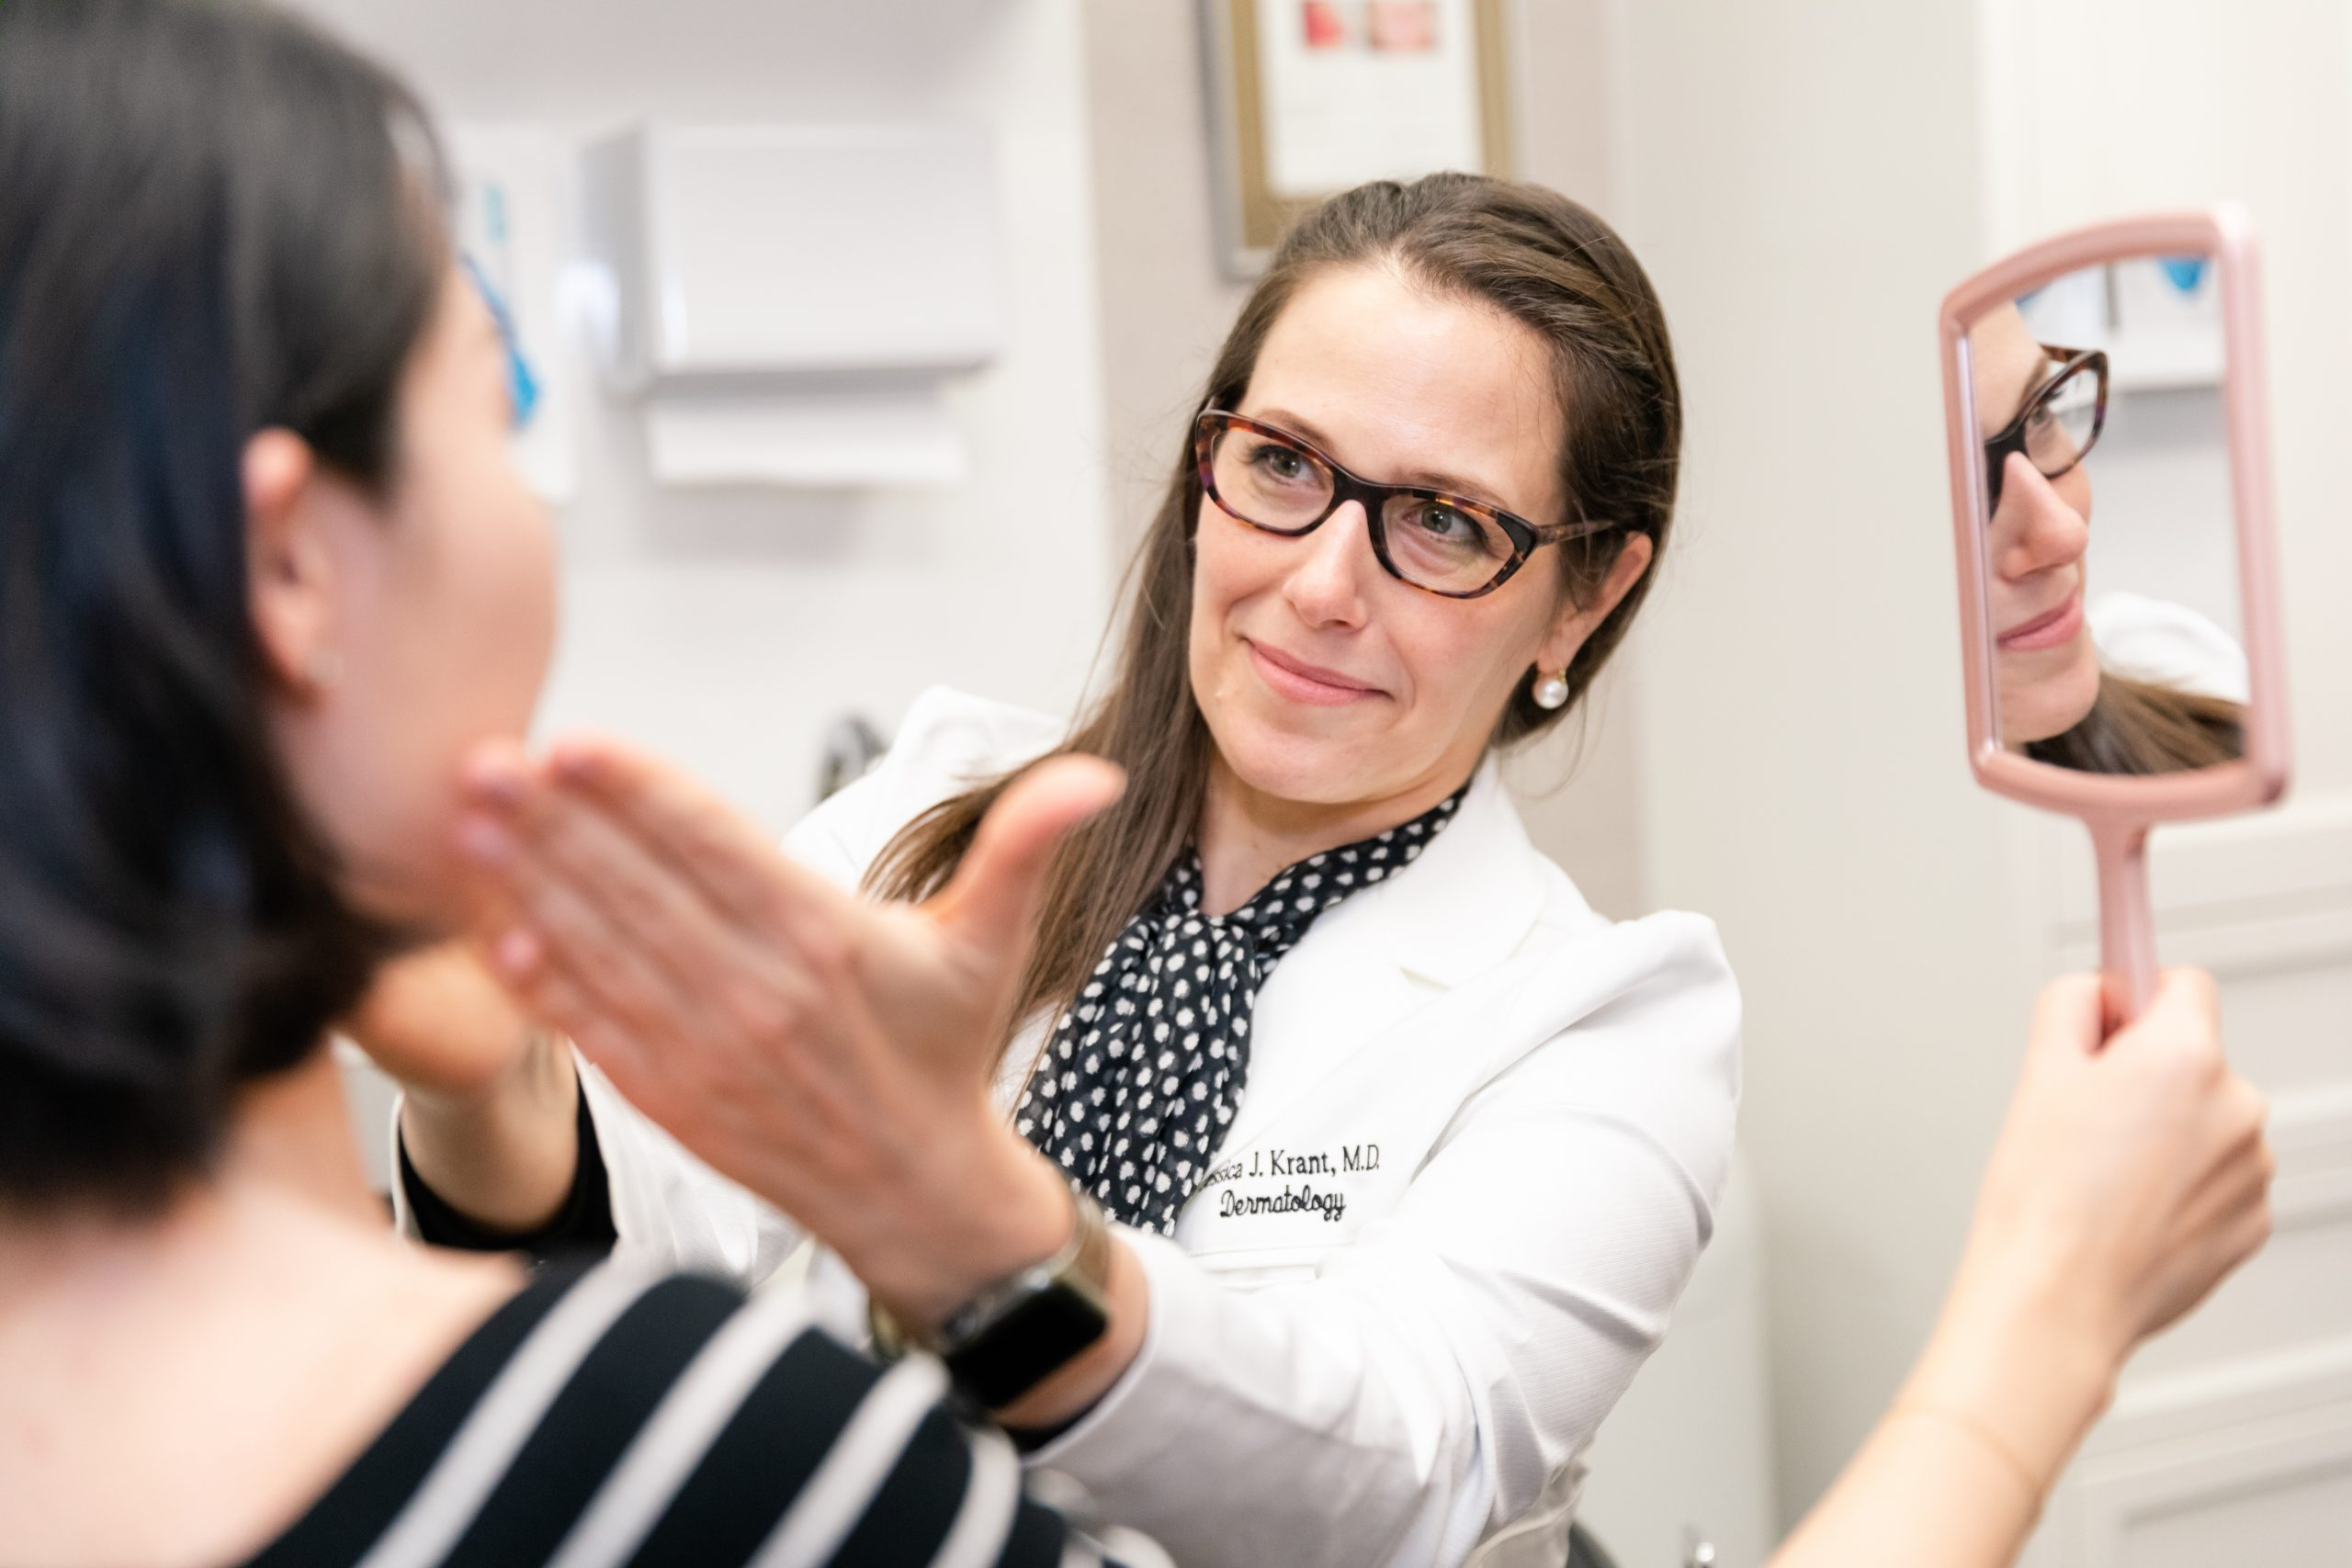 NYC dermatologist with a mole removal patient in NYC, NY